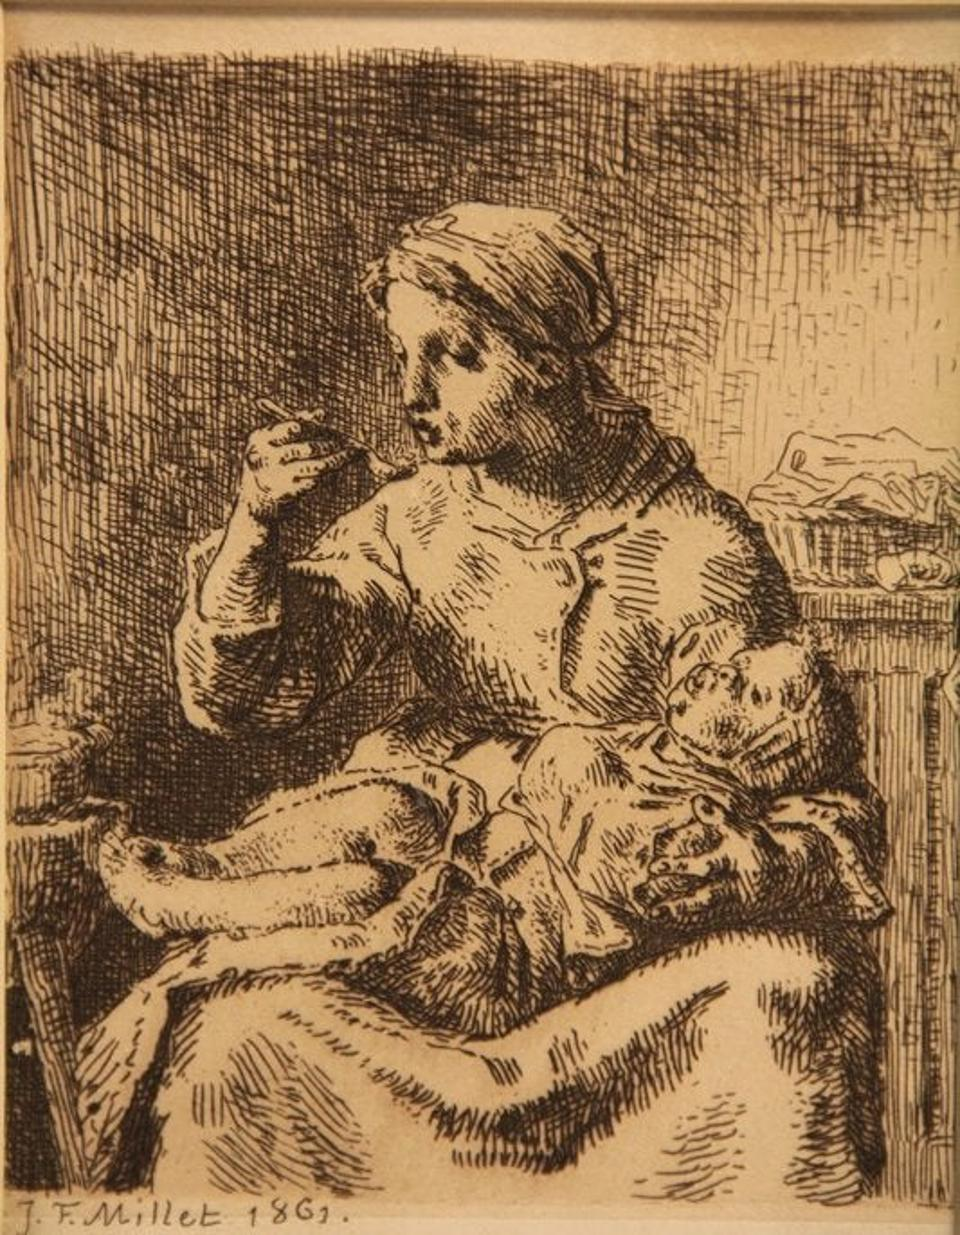 Jean Francois Millet etching from 1861